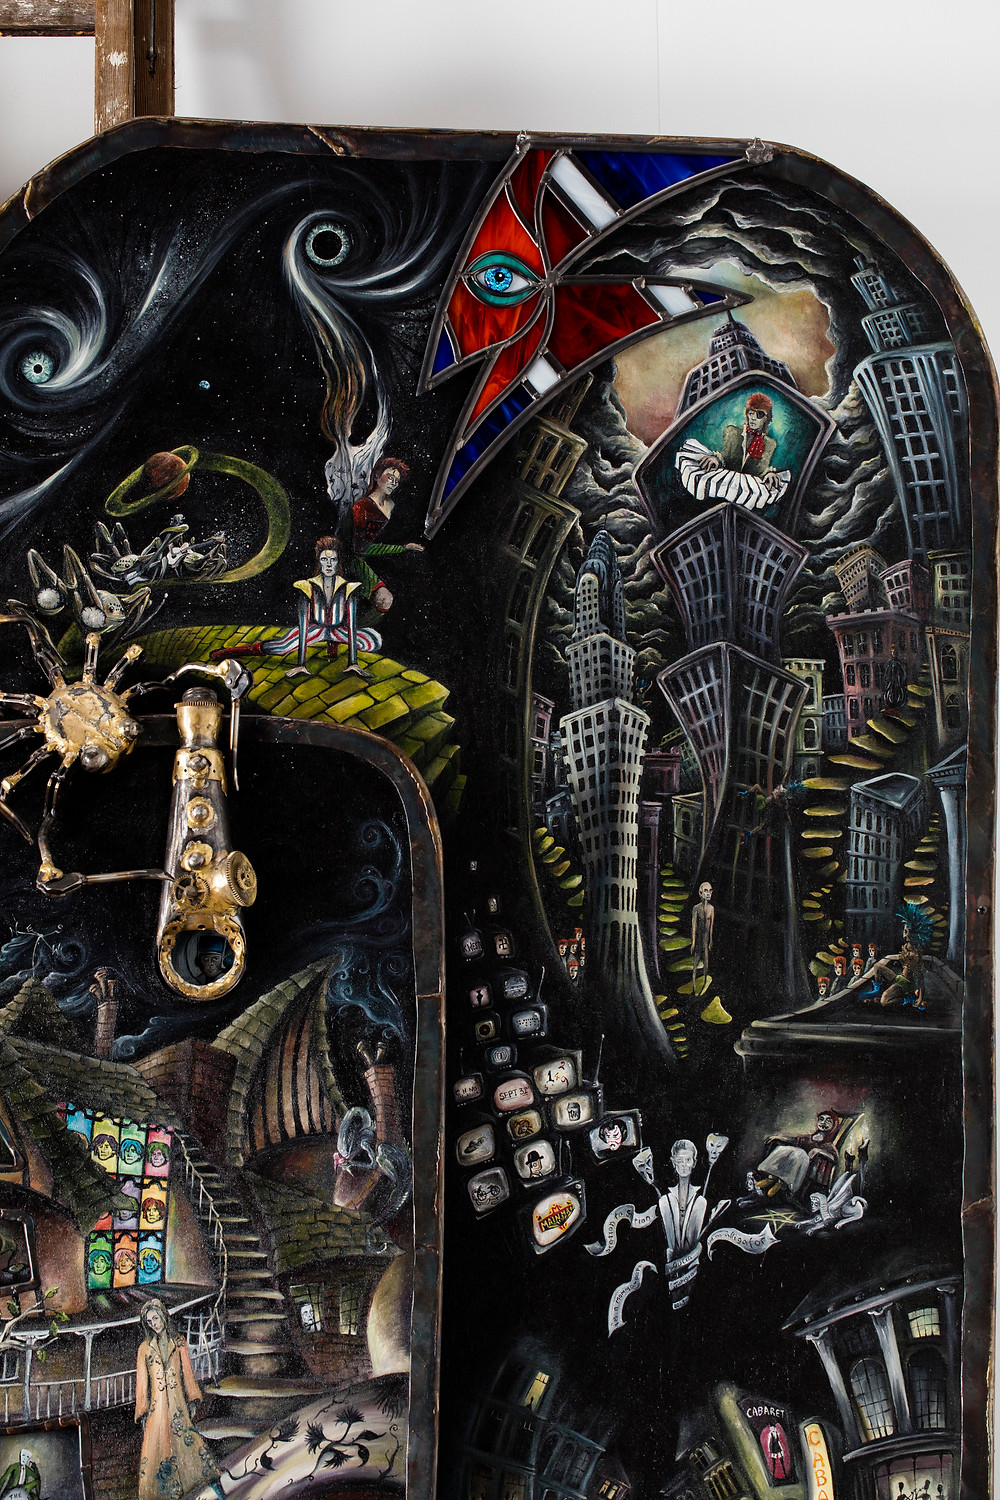 Welsh Artist Julia's Painting Depicting the life and music of David Bowie,  here is Ziggy Stardust and the Spiders from Mars, Major Tom looks towards Earth and Halloween Jack plays in New York